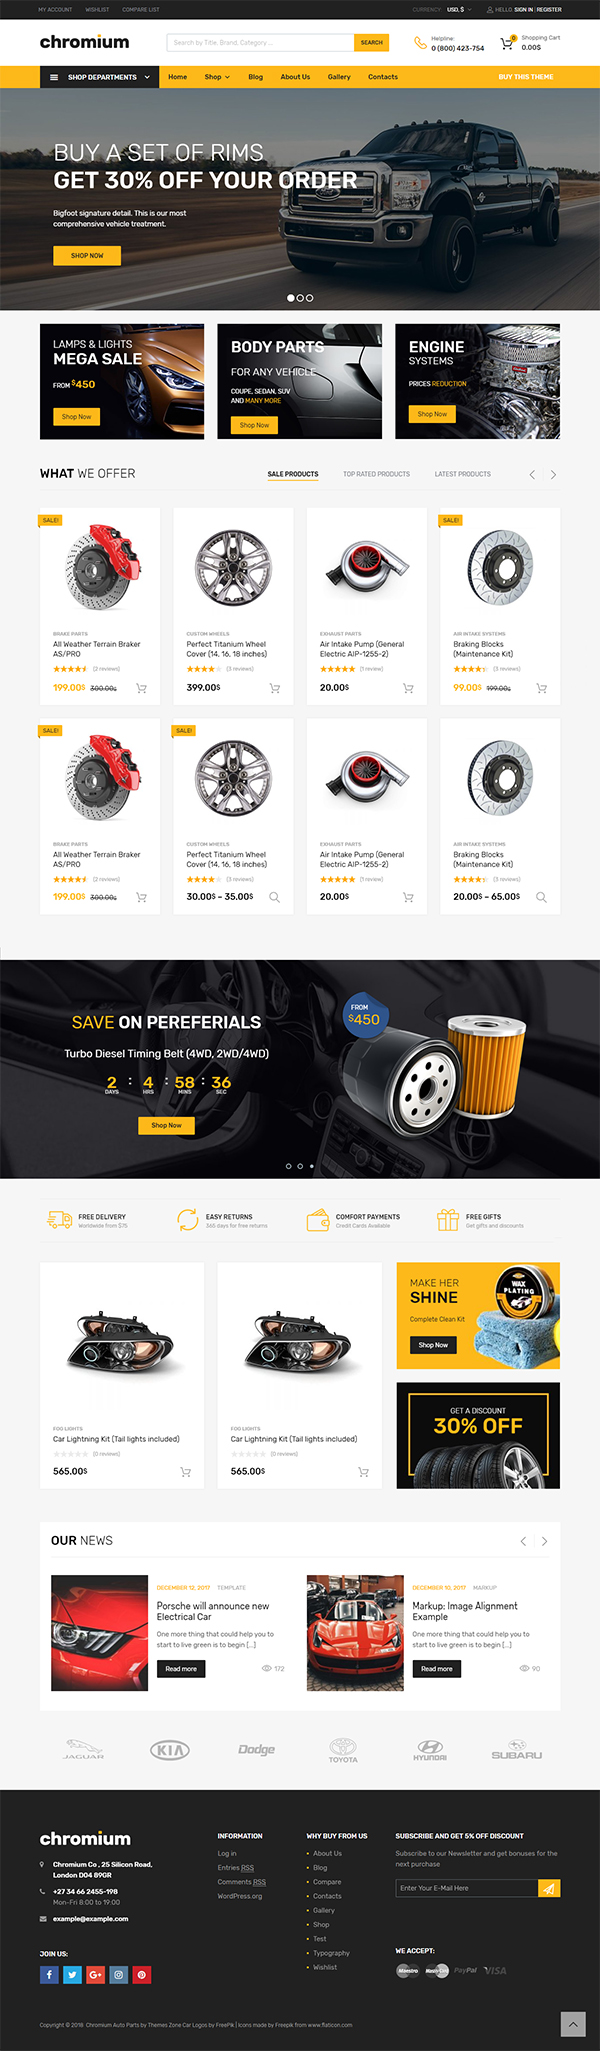 Chromium – Auto Parts Shop WordPress WooCommerce Theme